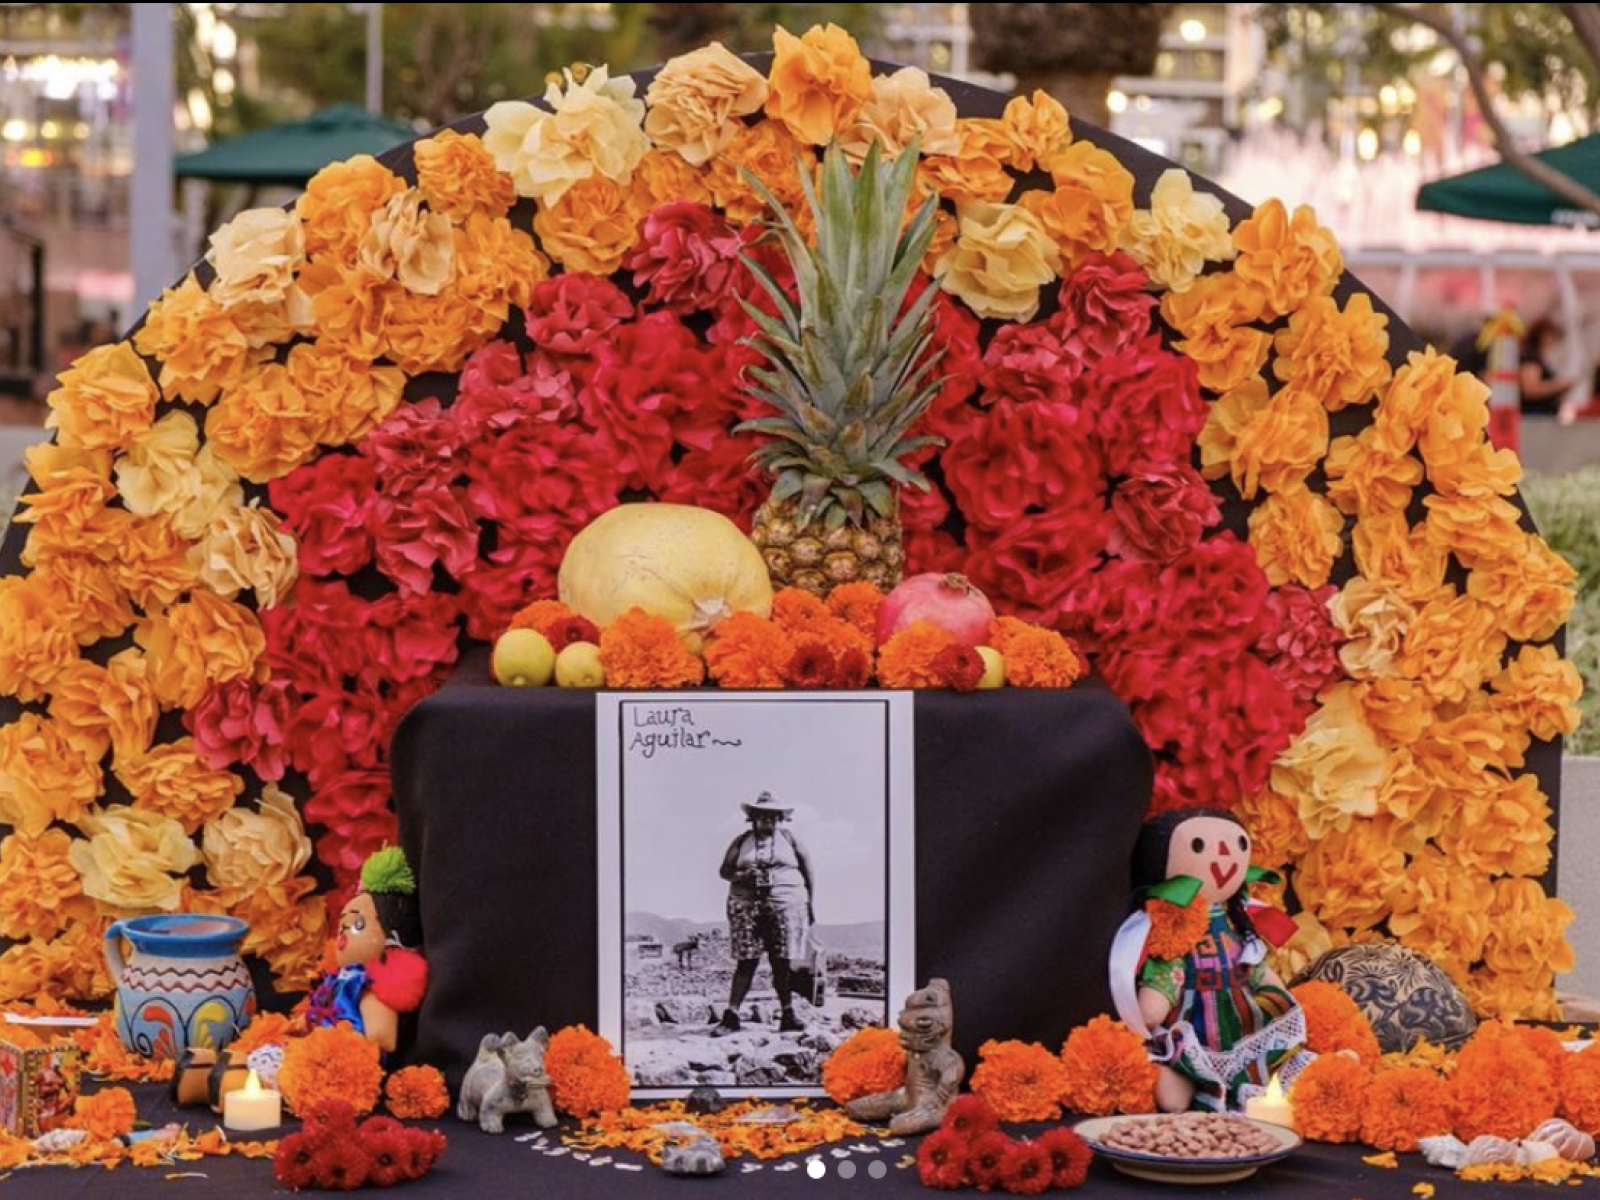 Main image for event titled Grand Park's Día de los Muertos Community Altars and Audio Tours (OPENING DAY)